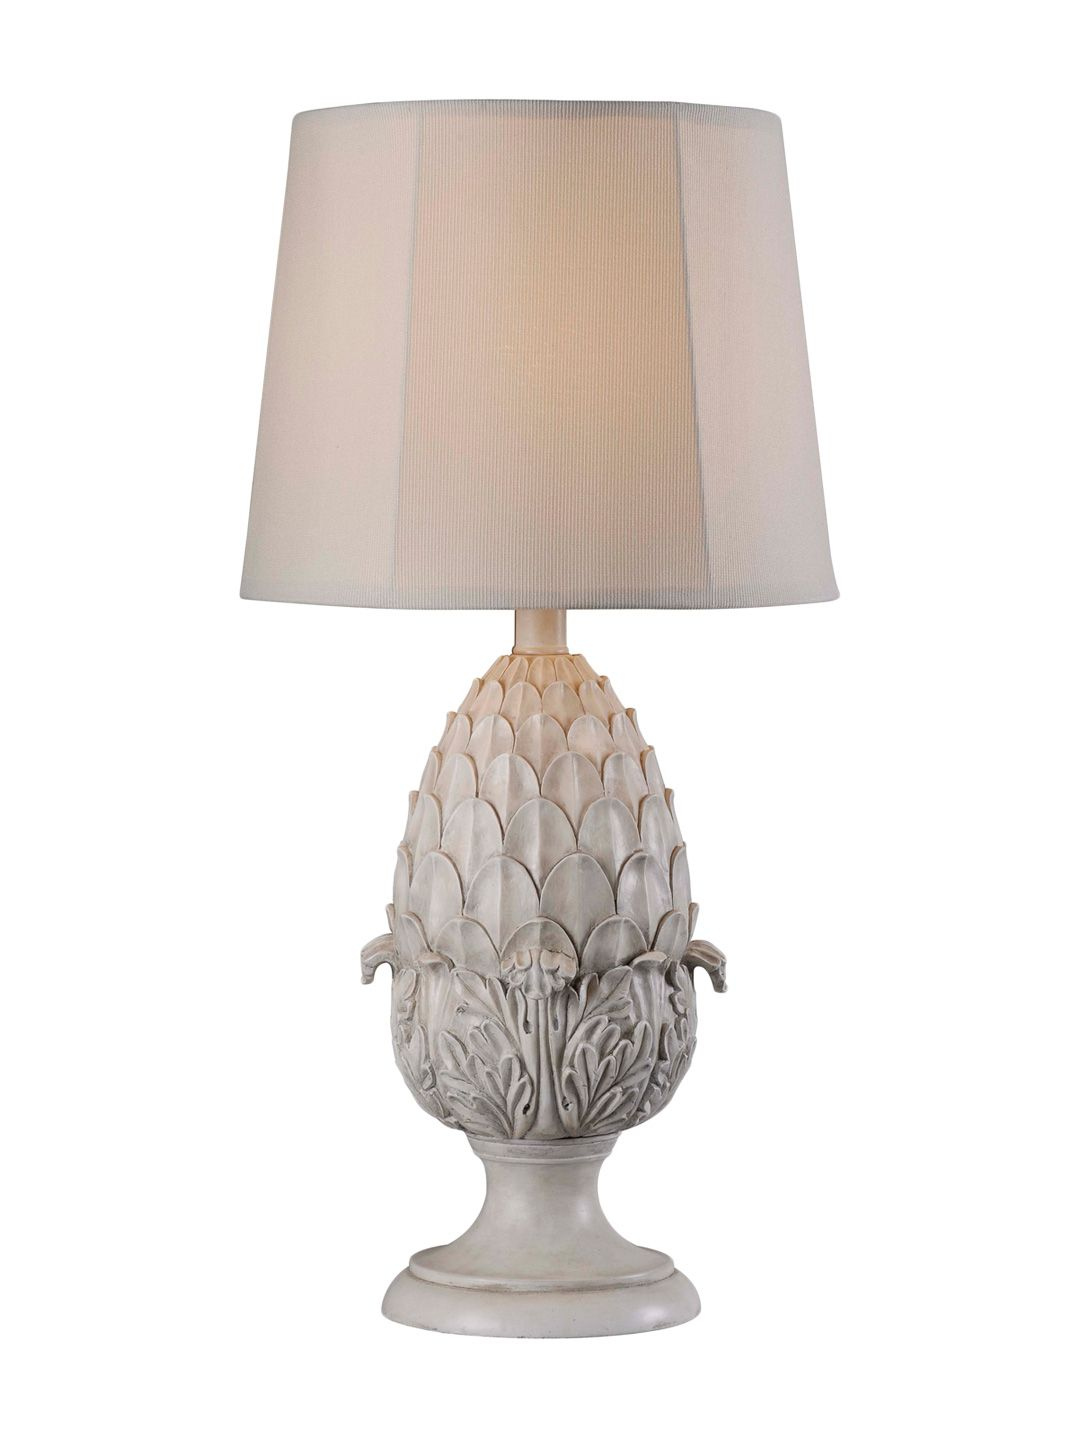 modern lighting company. founded in the 1950s but still a thoroughly modern lighting company designcraft also